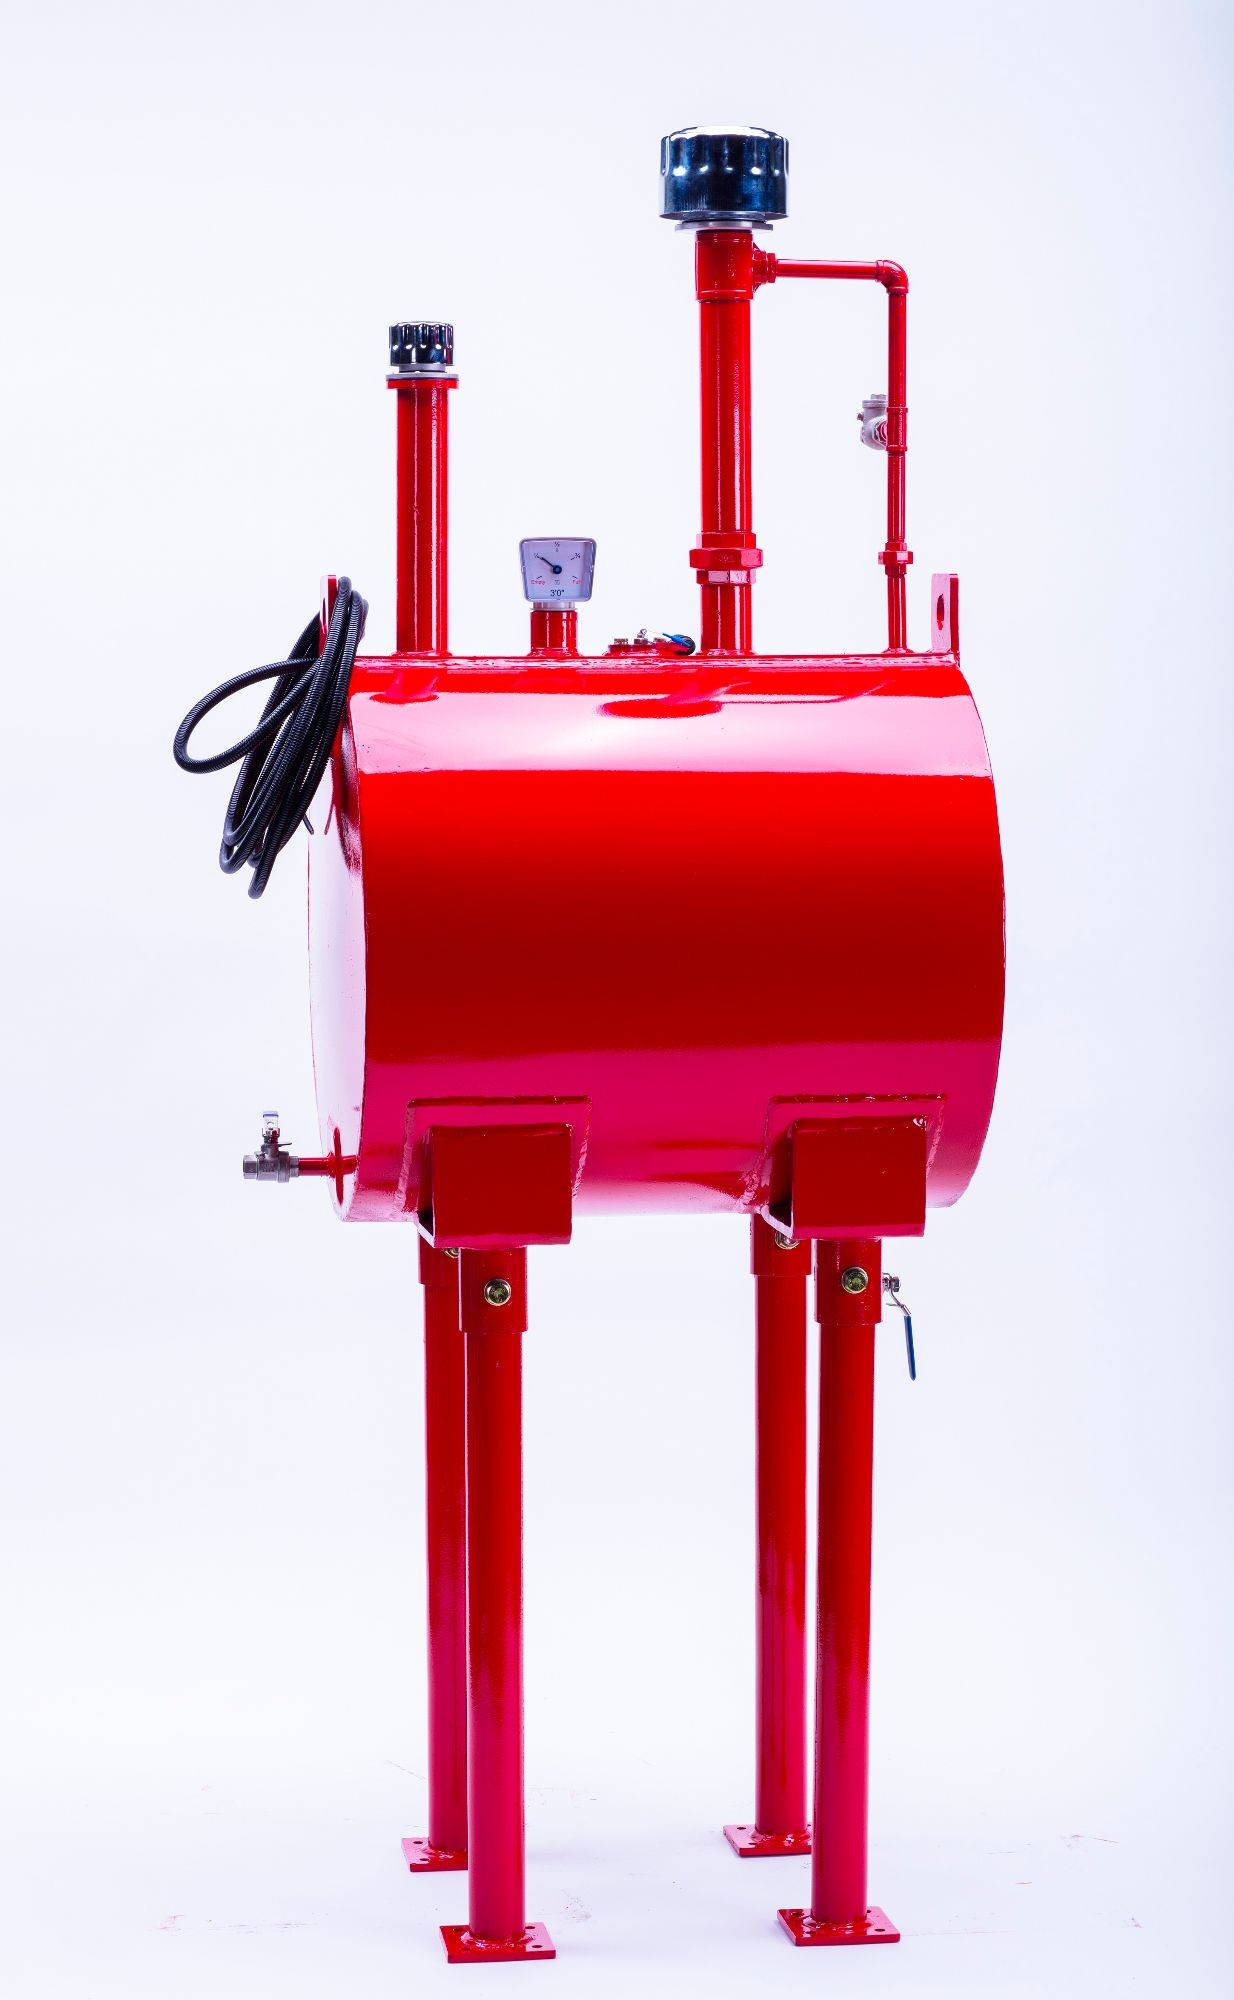 அது https://www.nmfirepumps.com/upload/product/1566368644737198.jpg